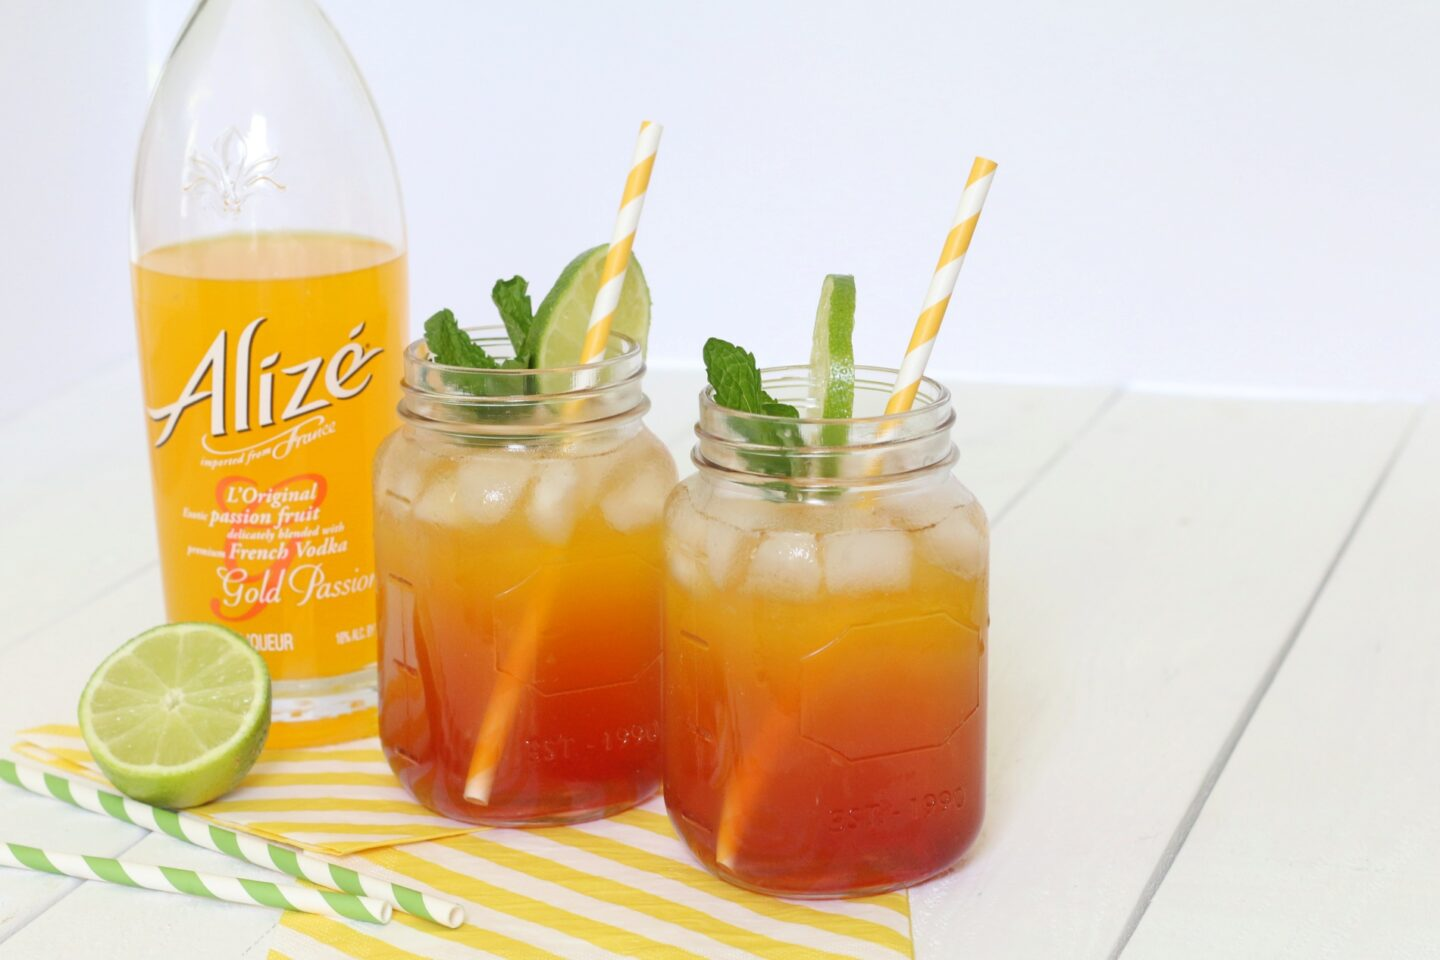 Caribbean Sunrise Cocktail with Alize Gold Passion